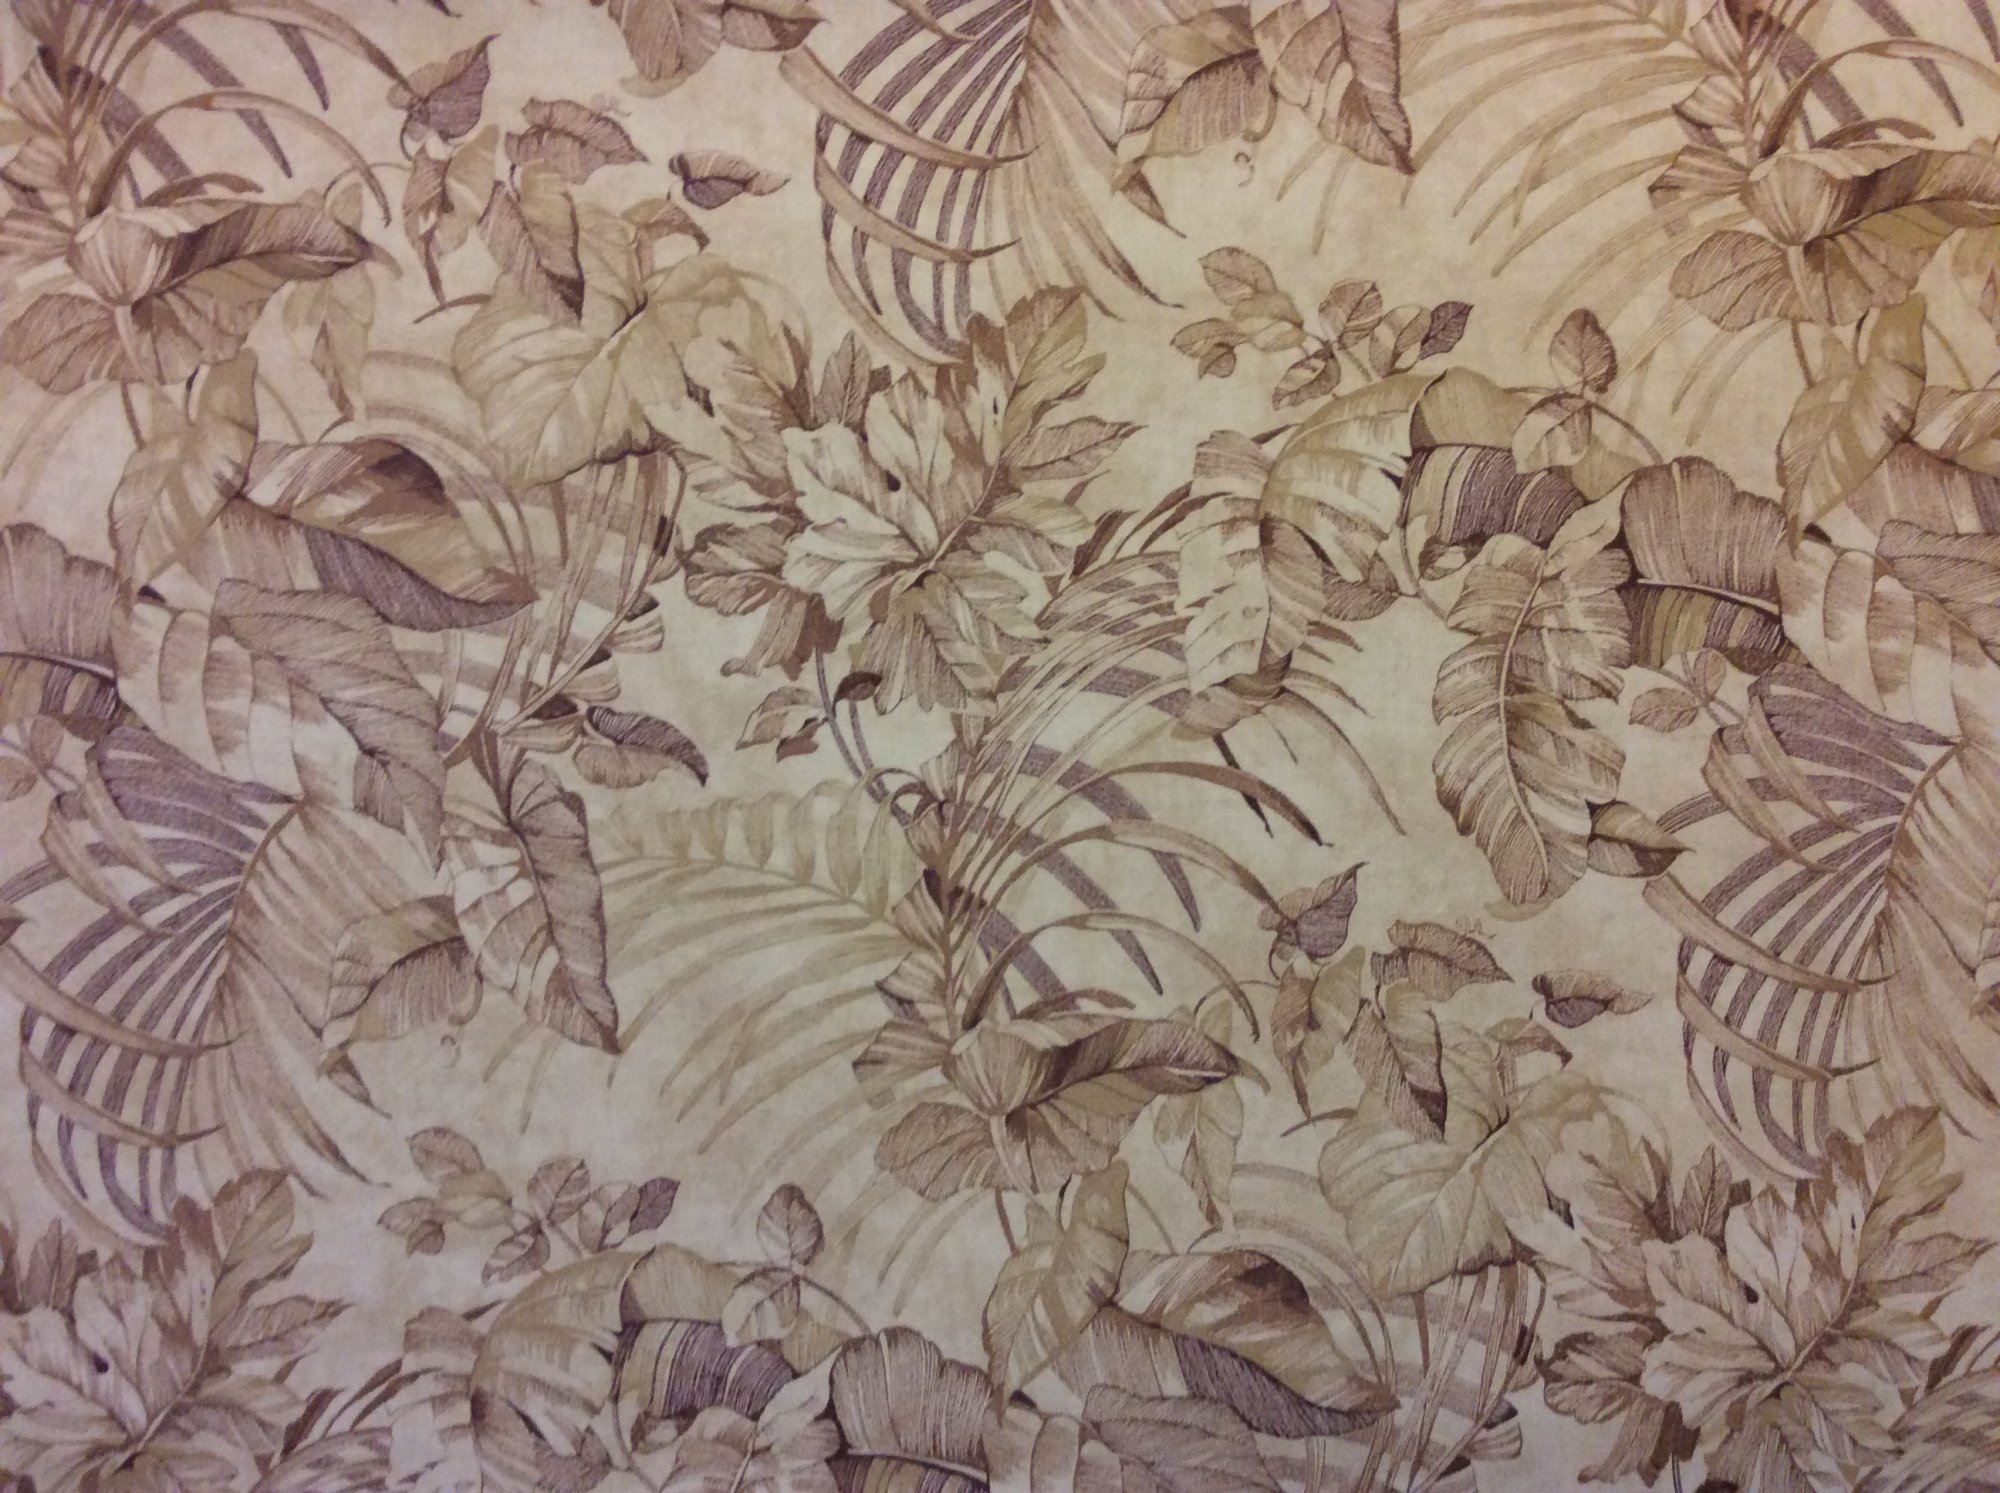 Neutral Tone Tropical Palm Floral Frond Toile Gold Brown Tone Indoor Outdoor Home Decor Upholstery Fabric 714